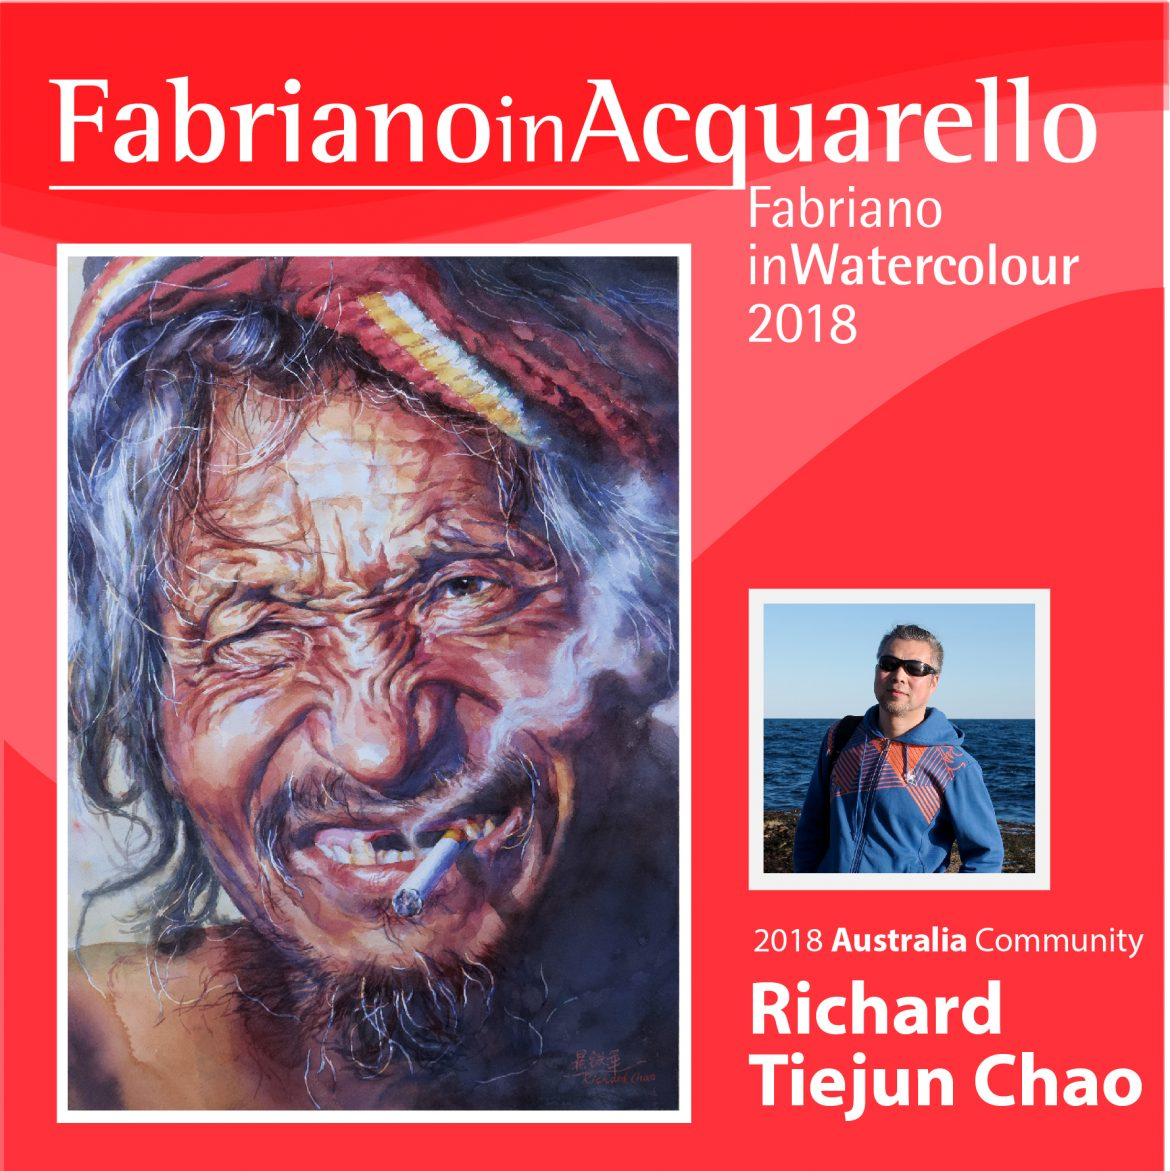 The Australian Finalists – FabrianoInAcquarello – 2018 Italy have been announced